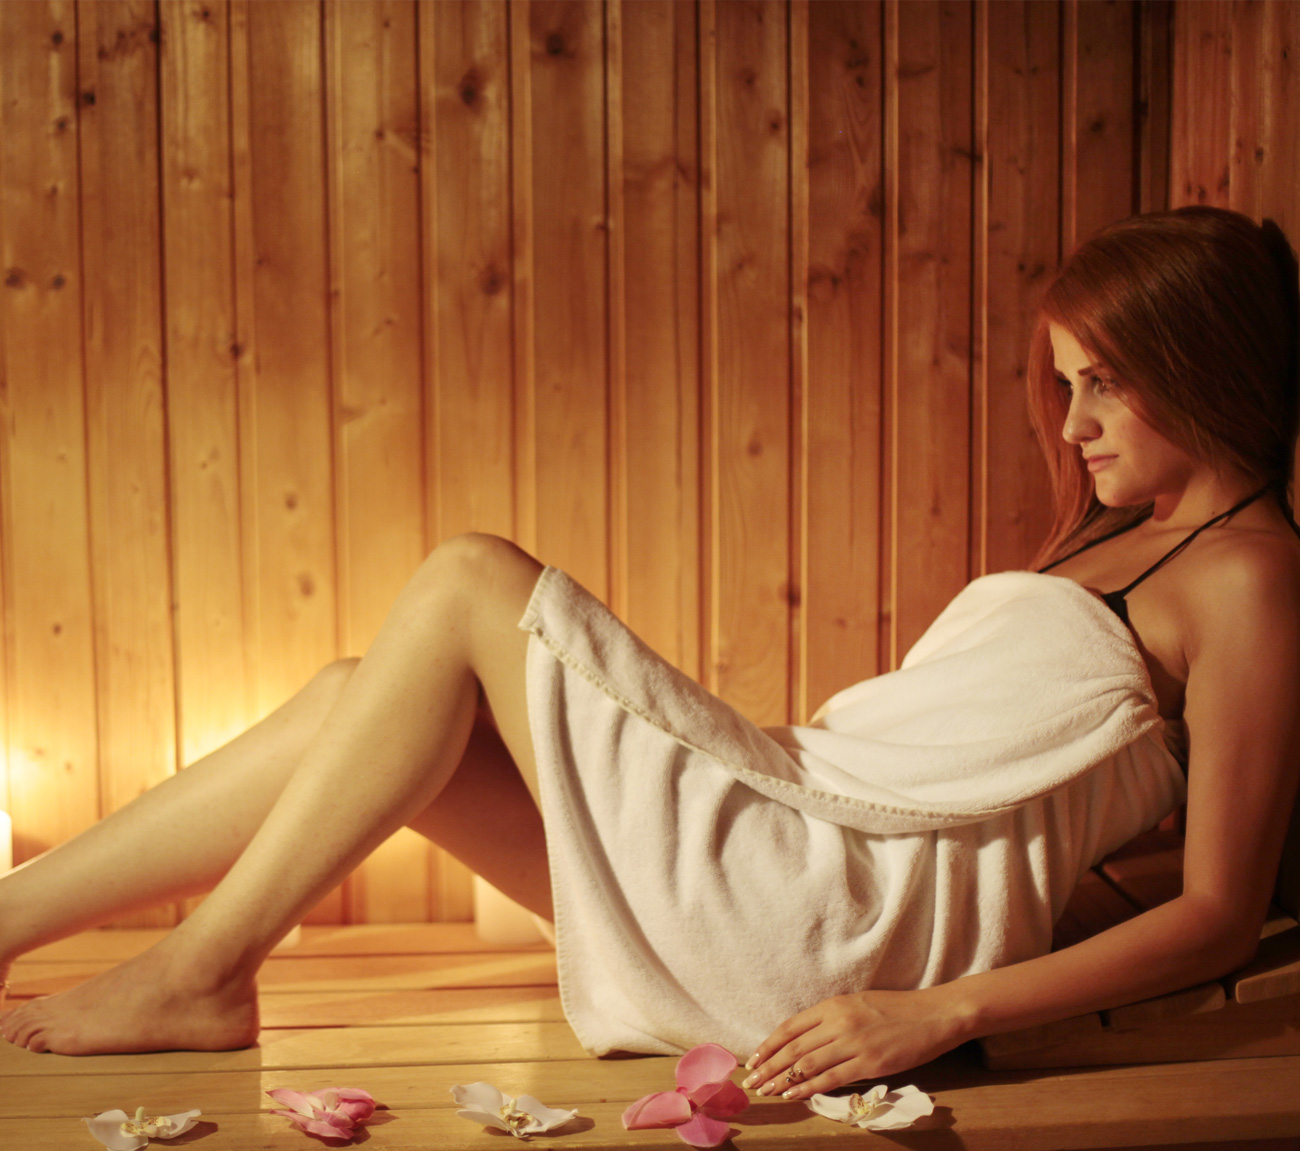 Erotic massage Hammam Sousse